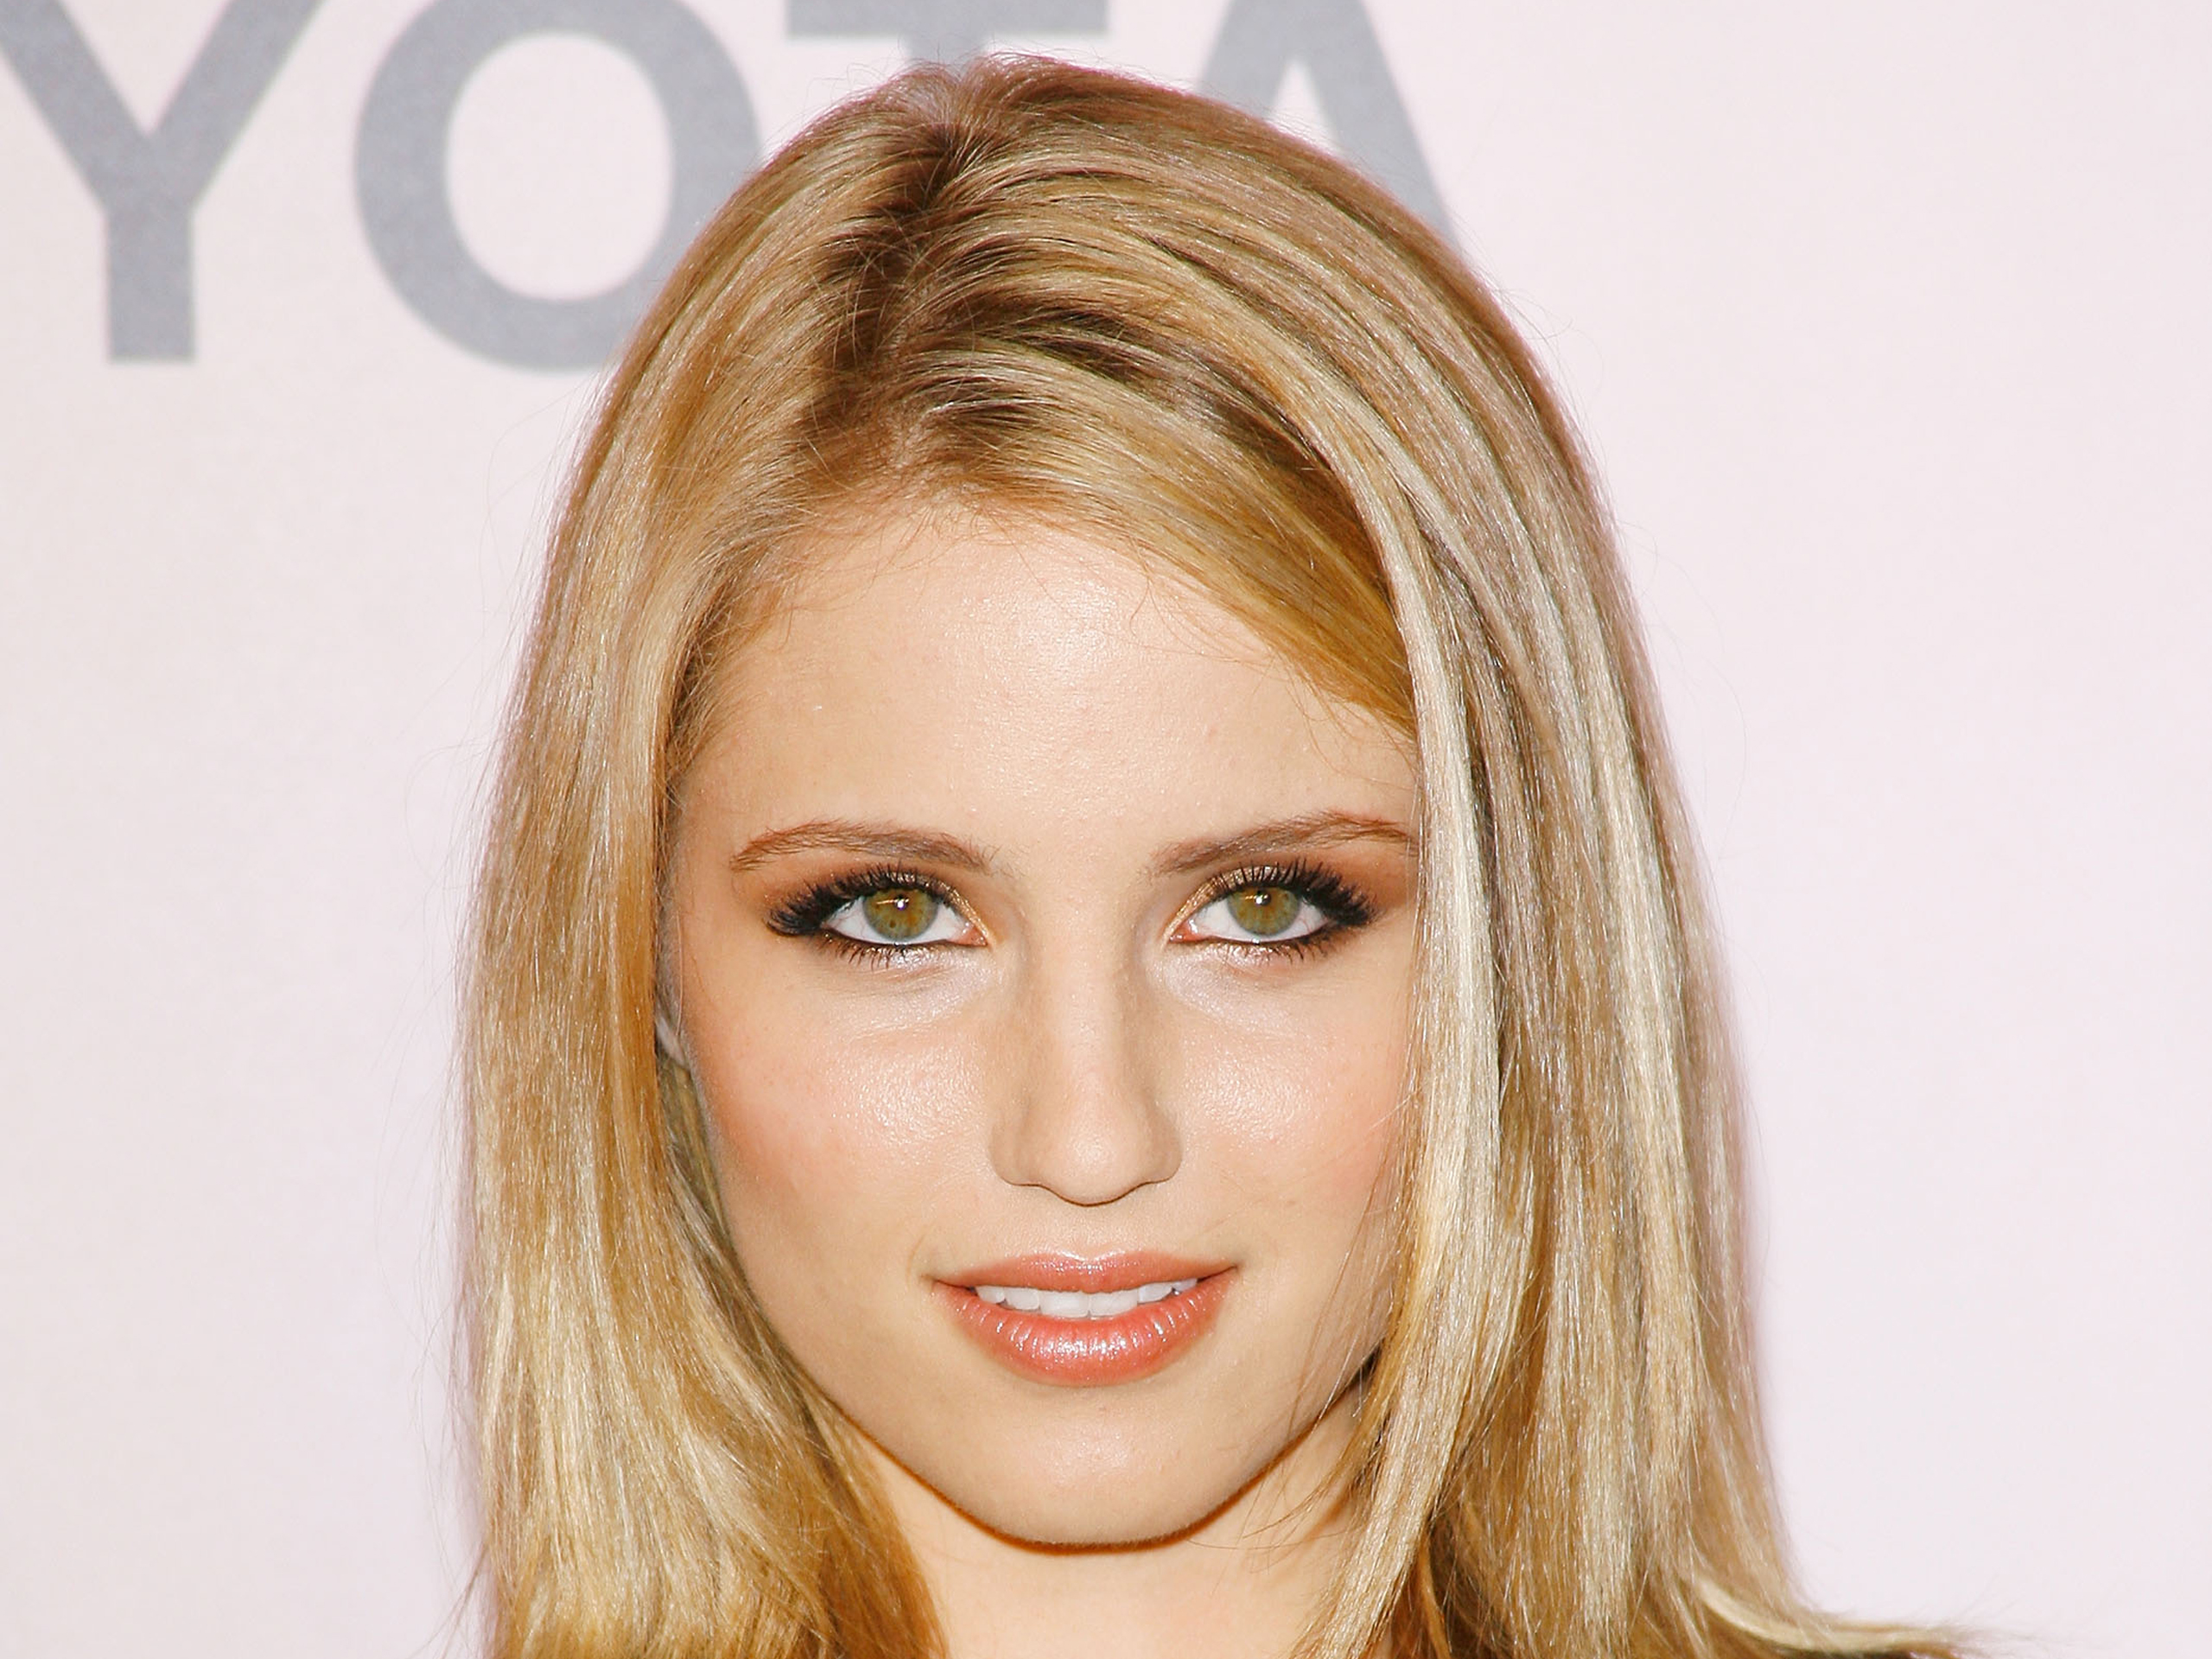 Download this Dianna Agron Giffoni picture